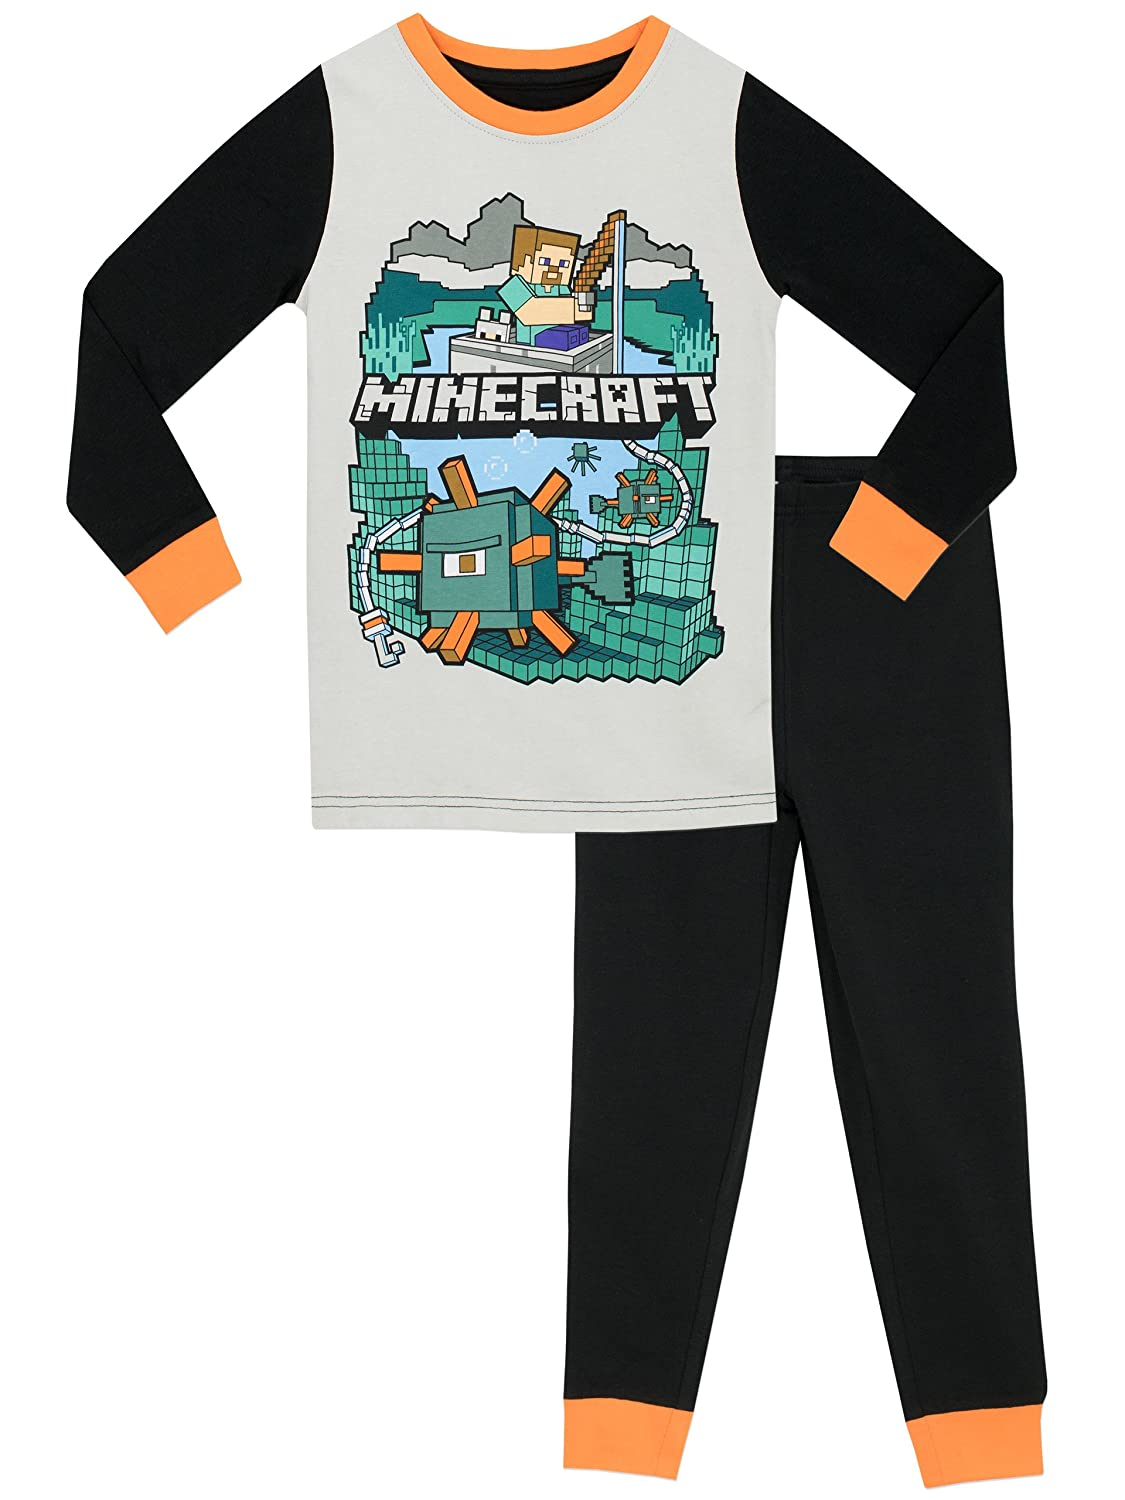 Minecraft Boys Pyjamas - Snuggle Fit - Ages 5 to 12 Years